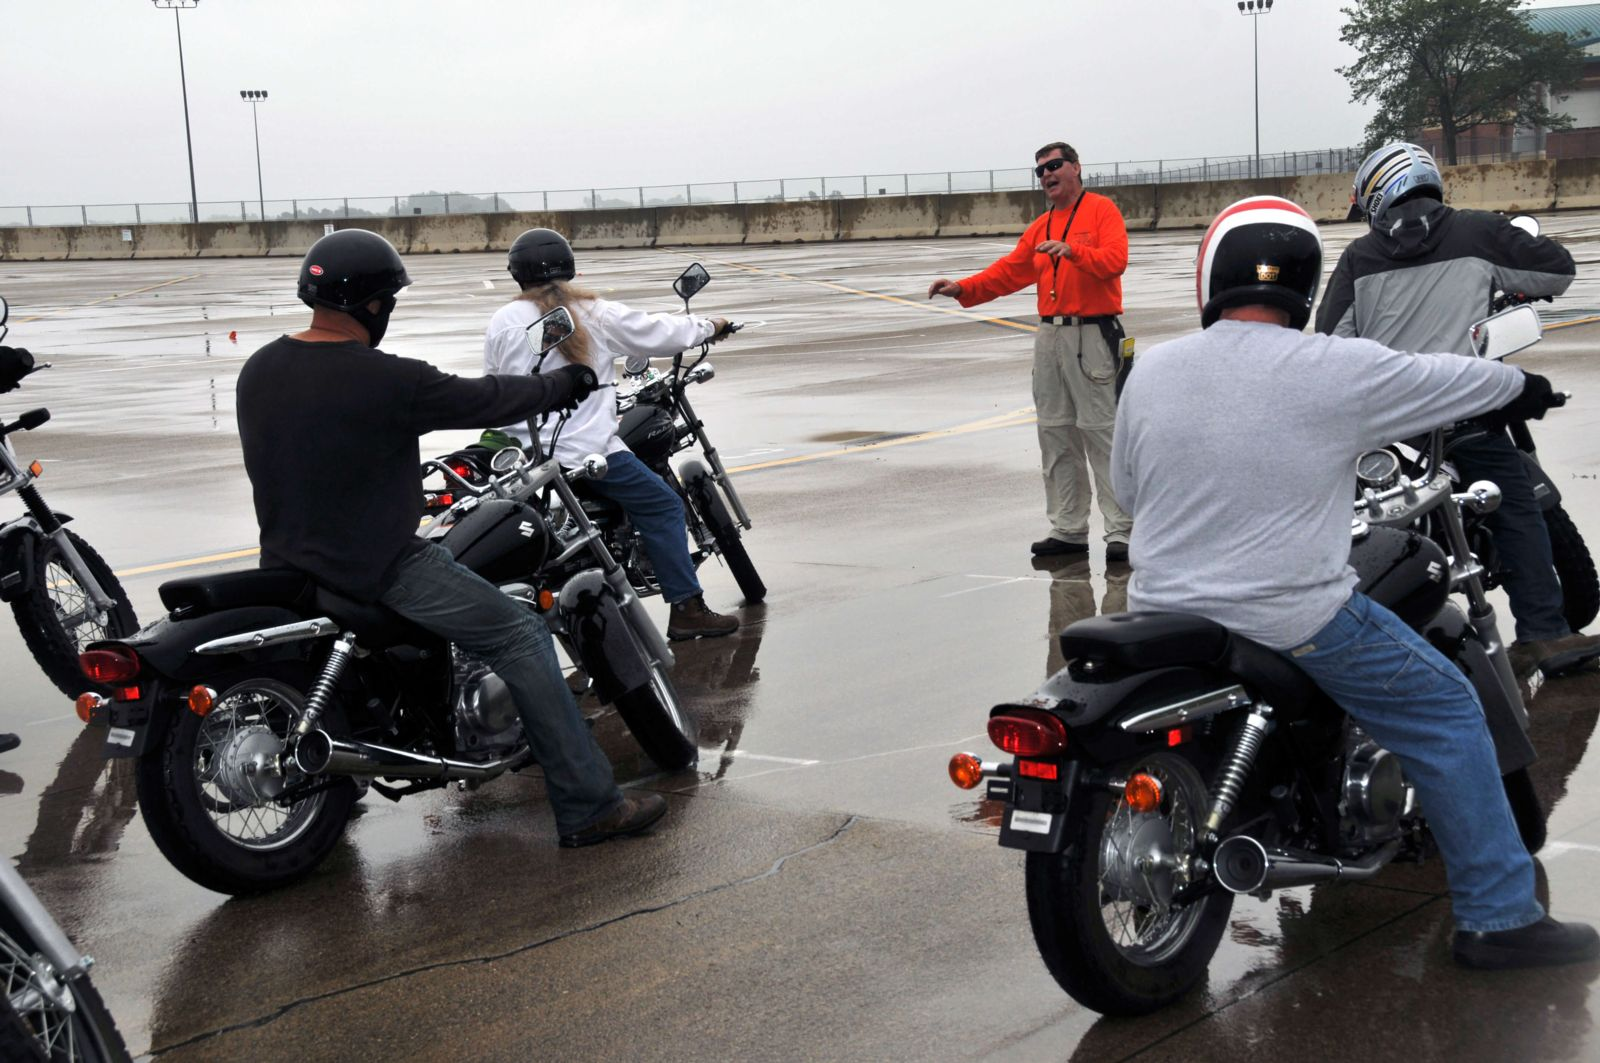 Motorcycle riders performing Obstacle Cross maneuver in motorcycle safety course